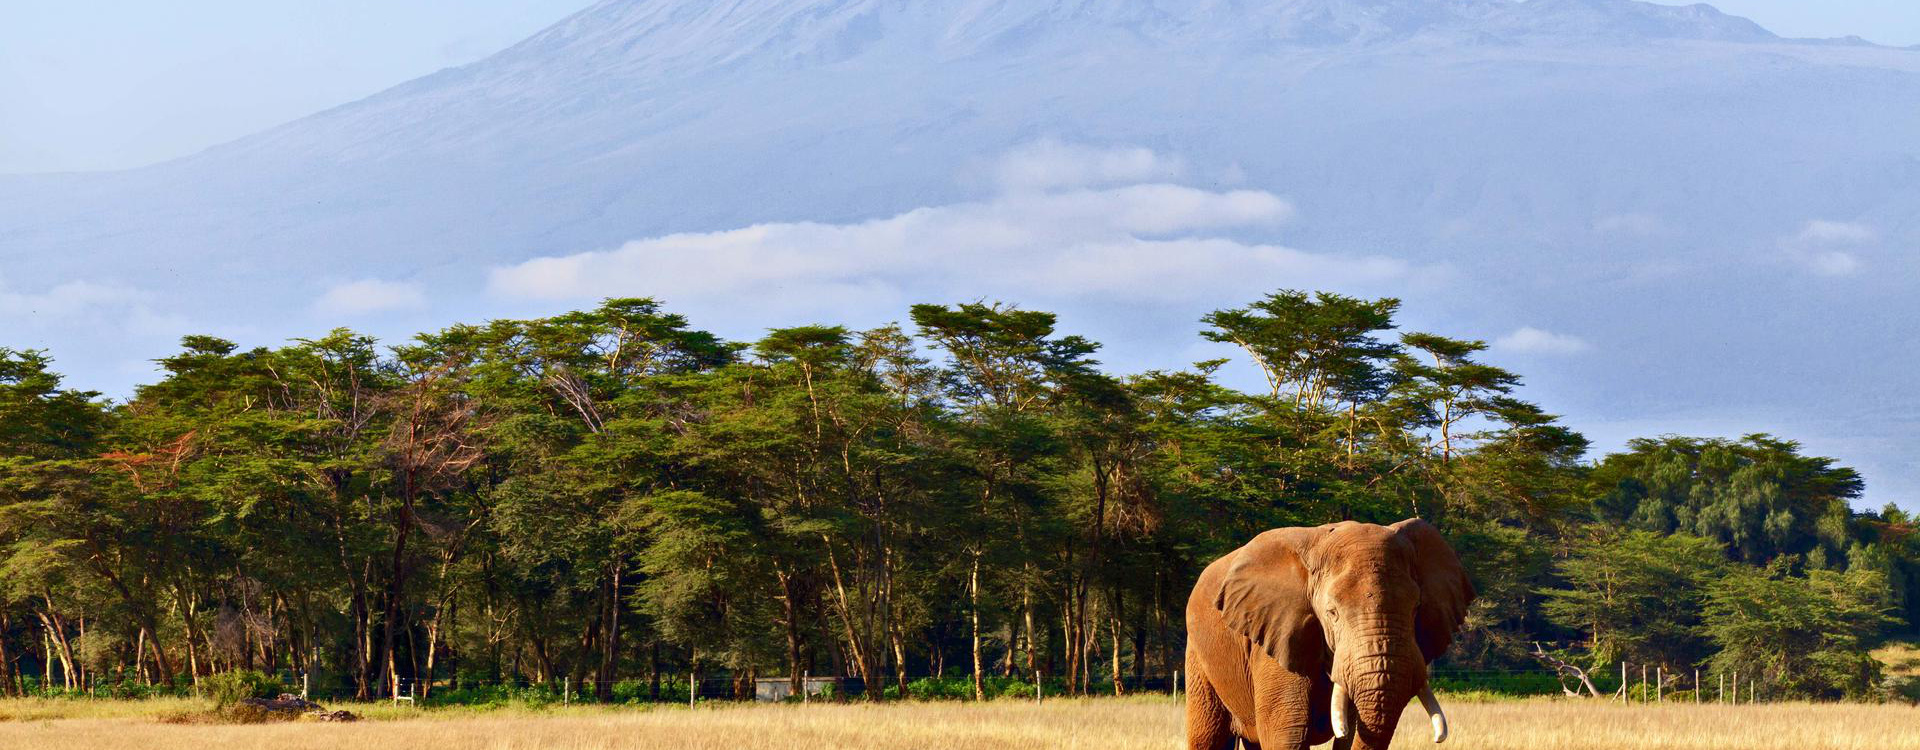 tanzanie-kilimanjaro-savane-safari-elephants